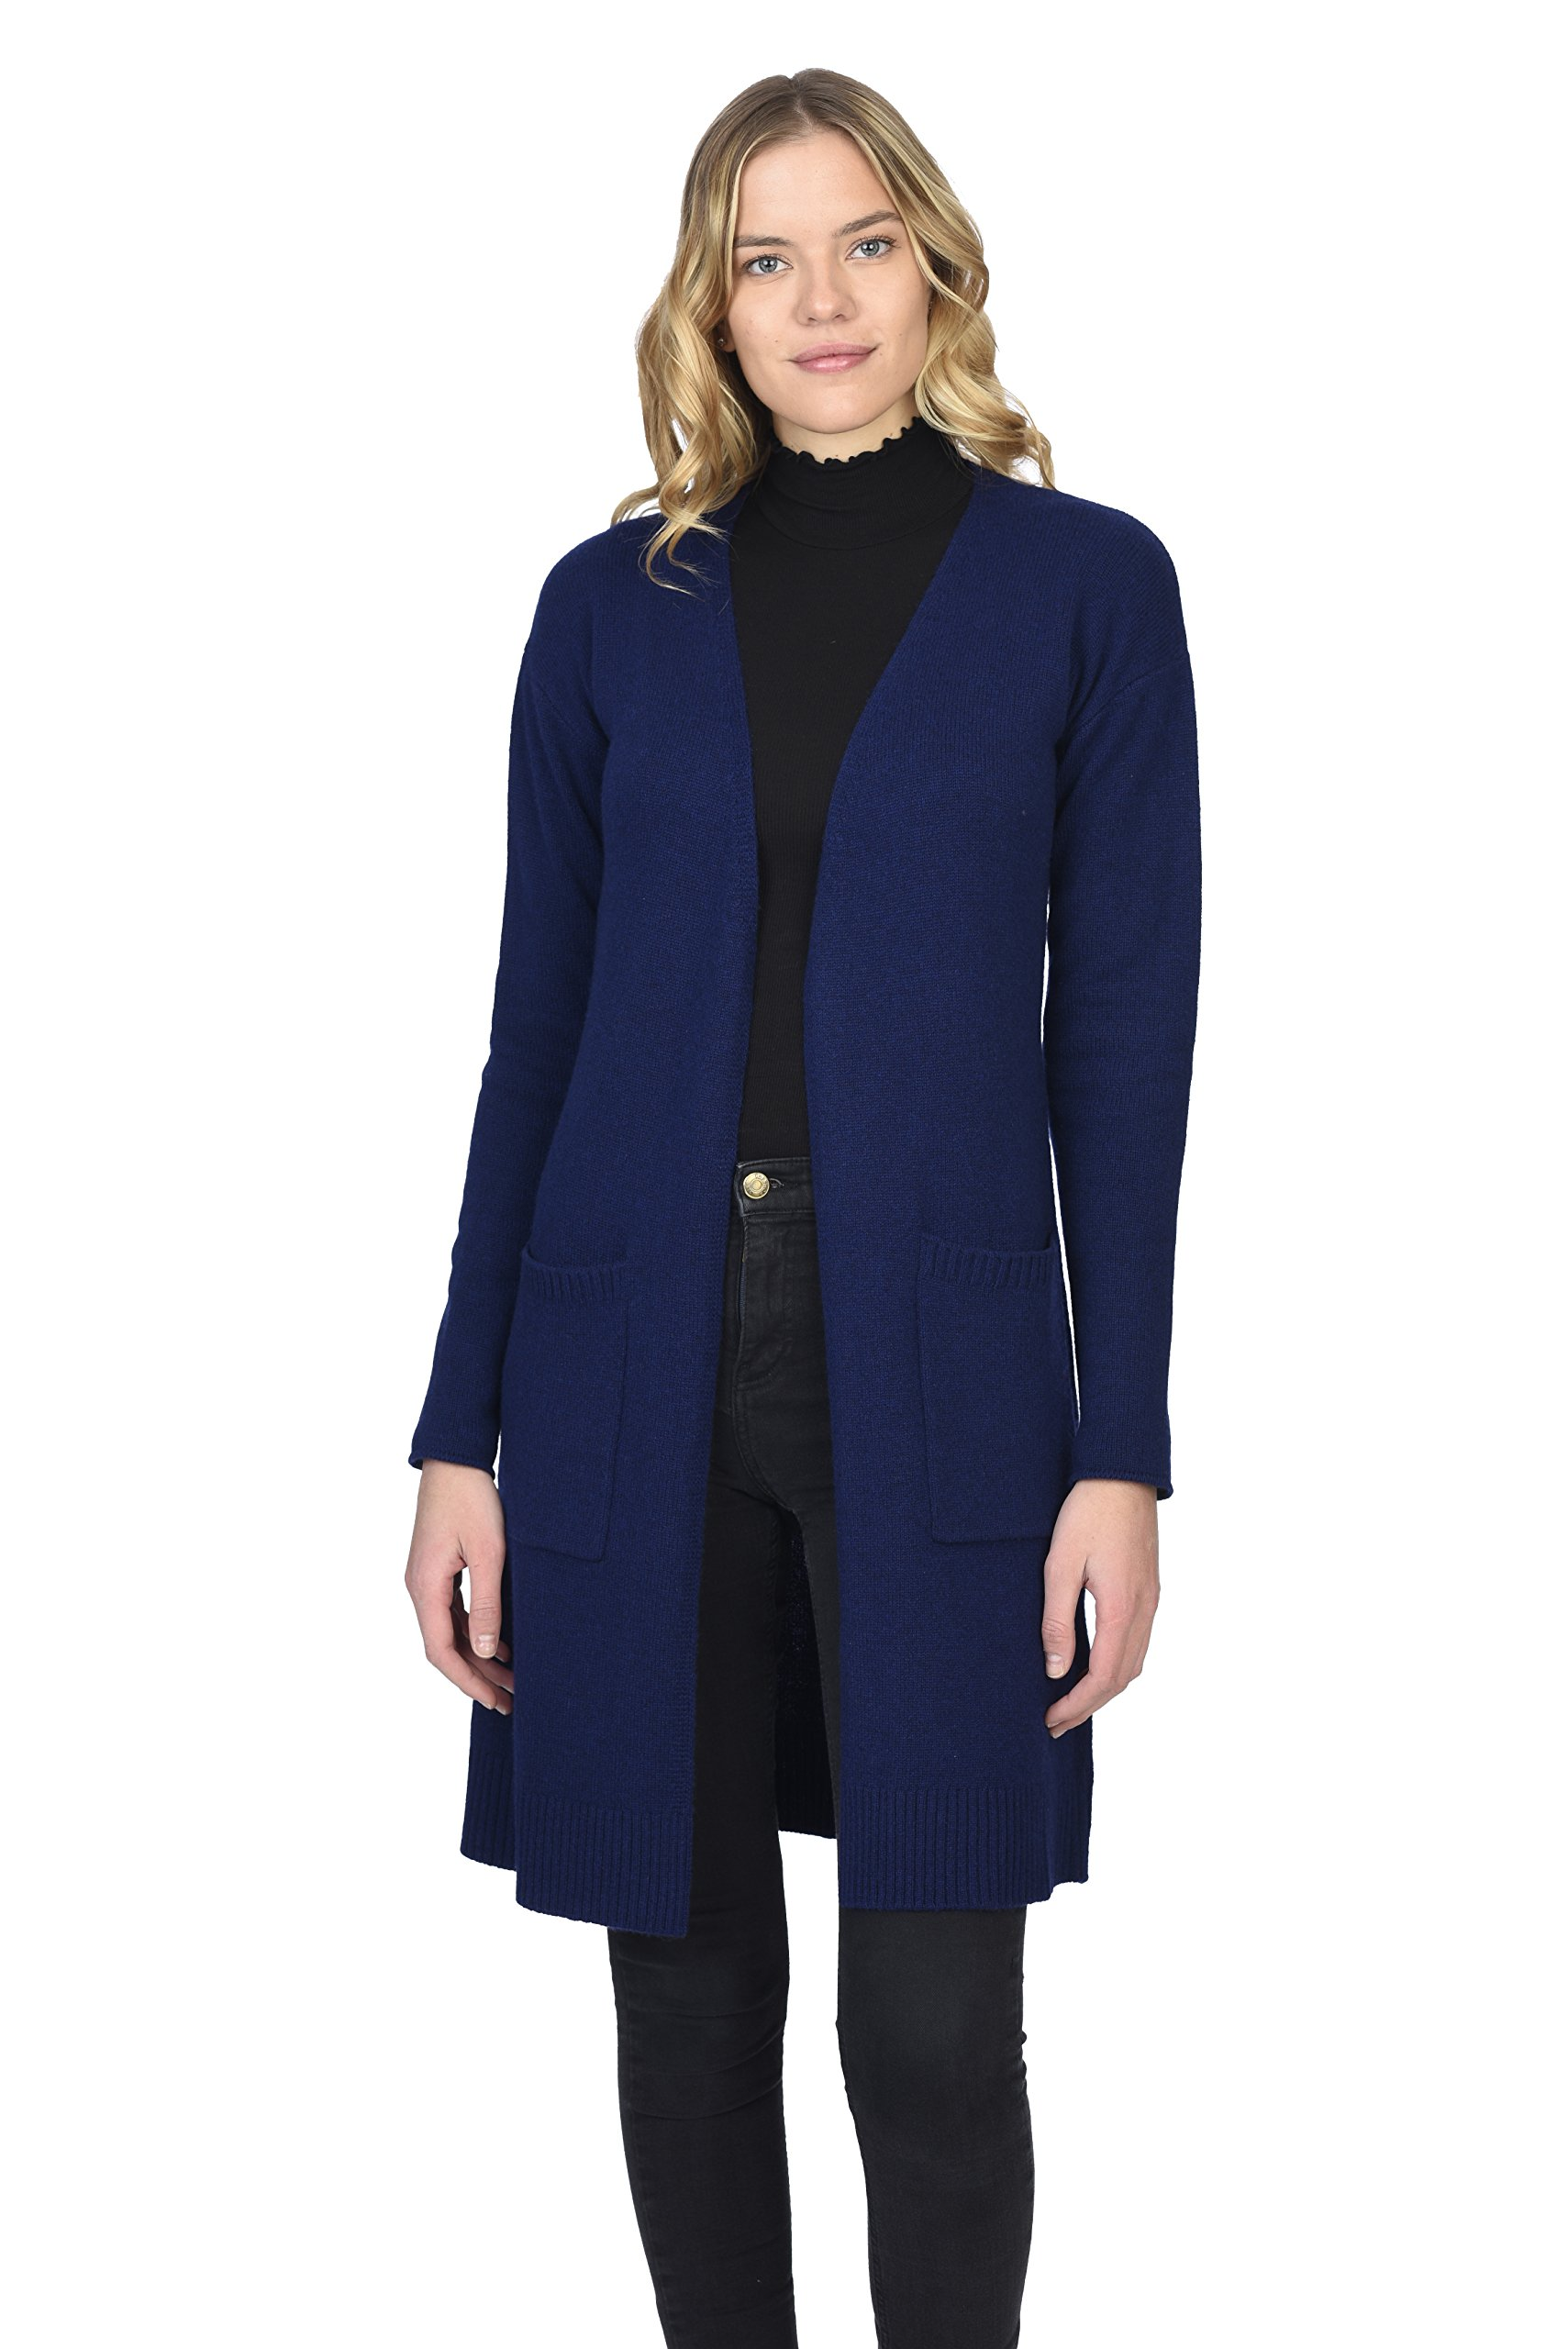 State Cashmere Women's 100% Pure Cashmere Open Front Long Cardigan, Navy, Medium by State Cashmere